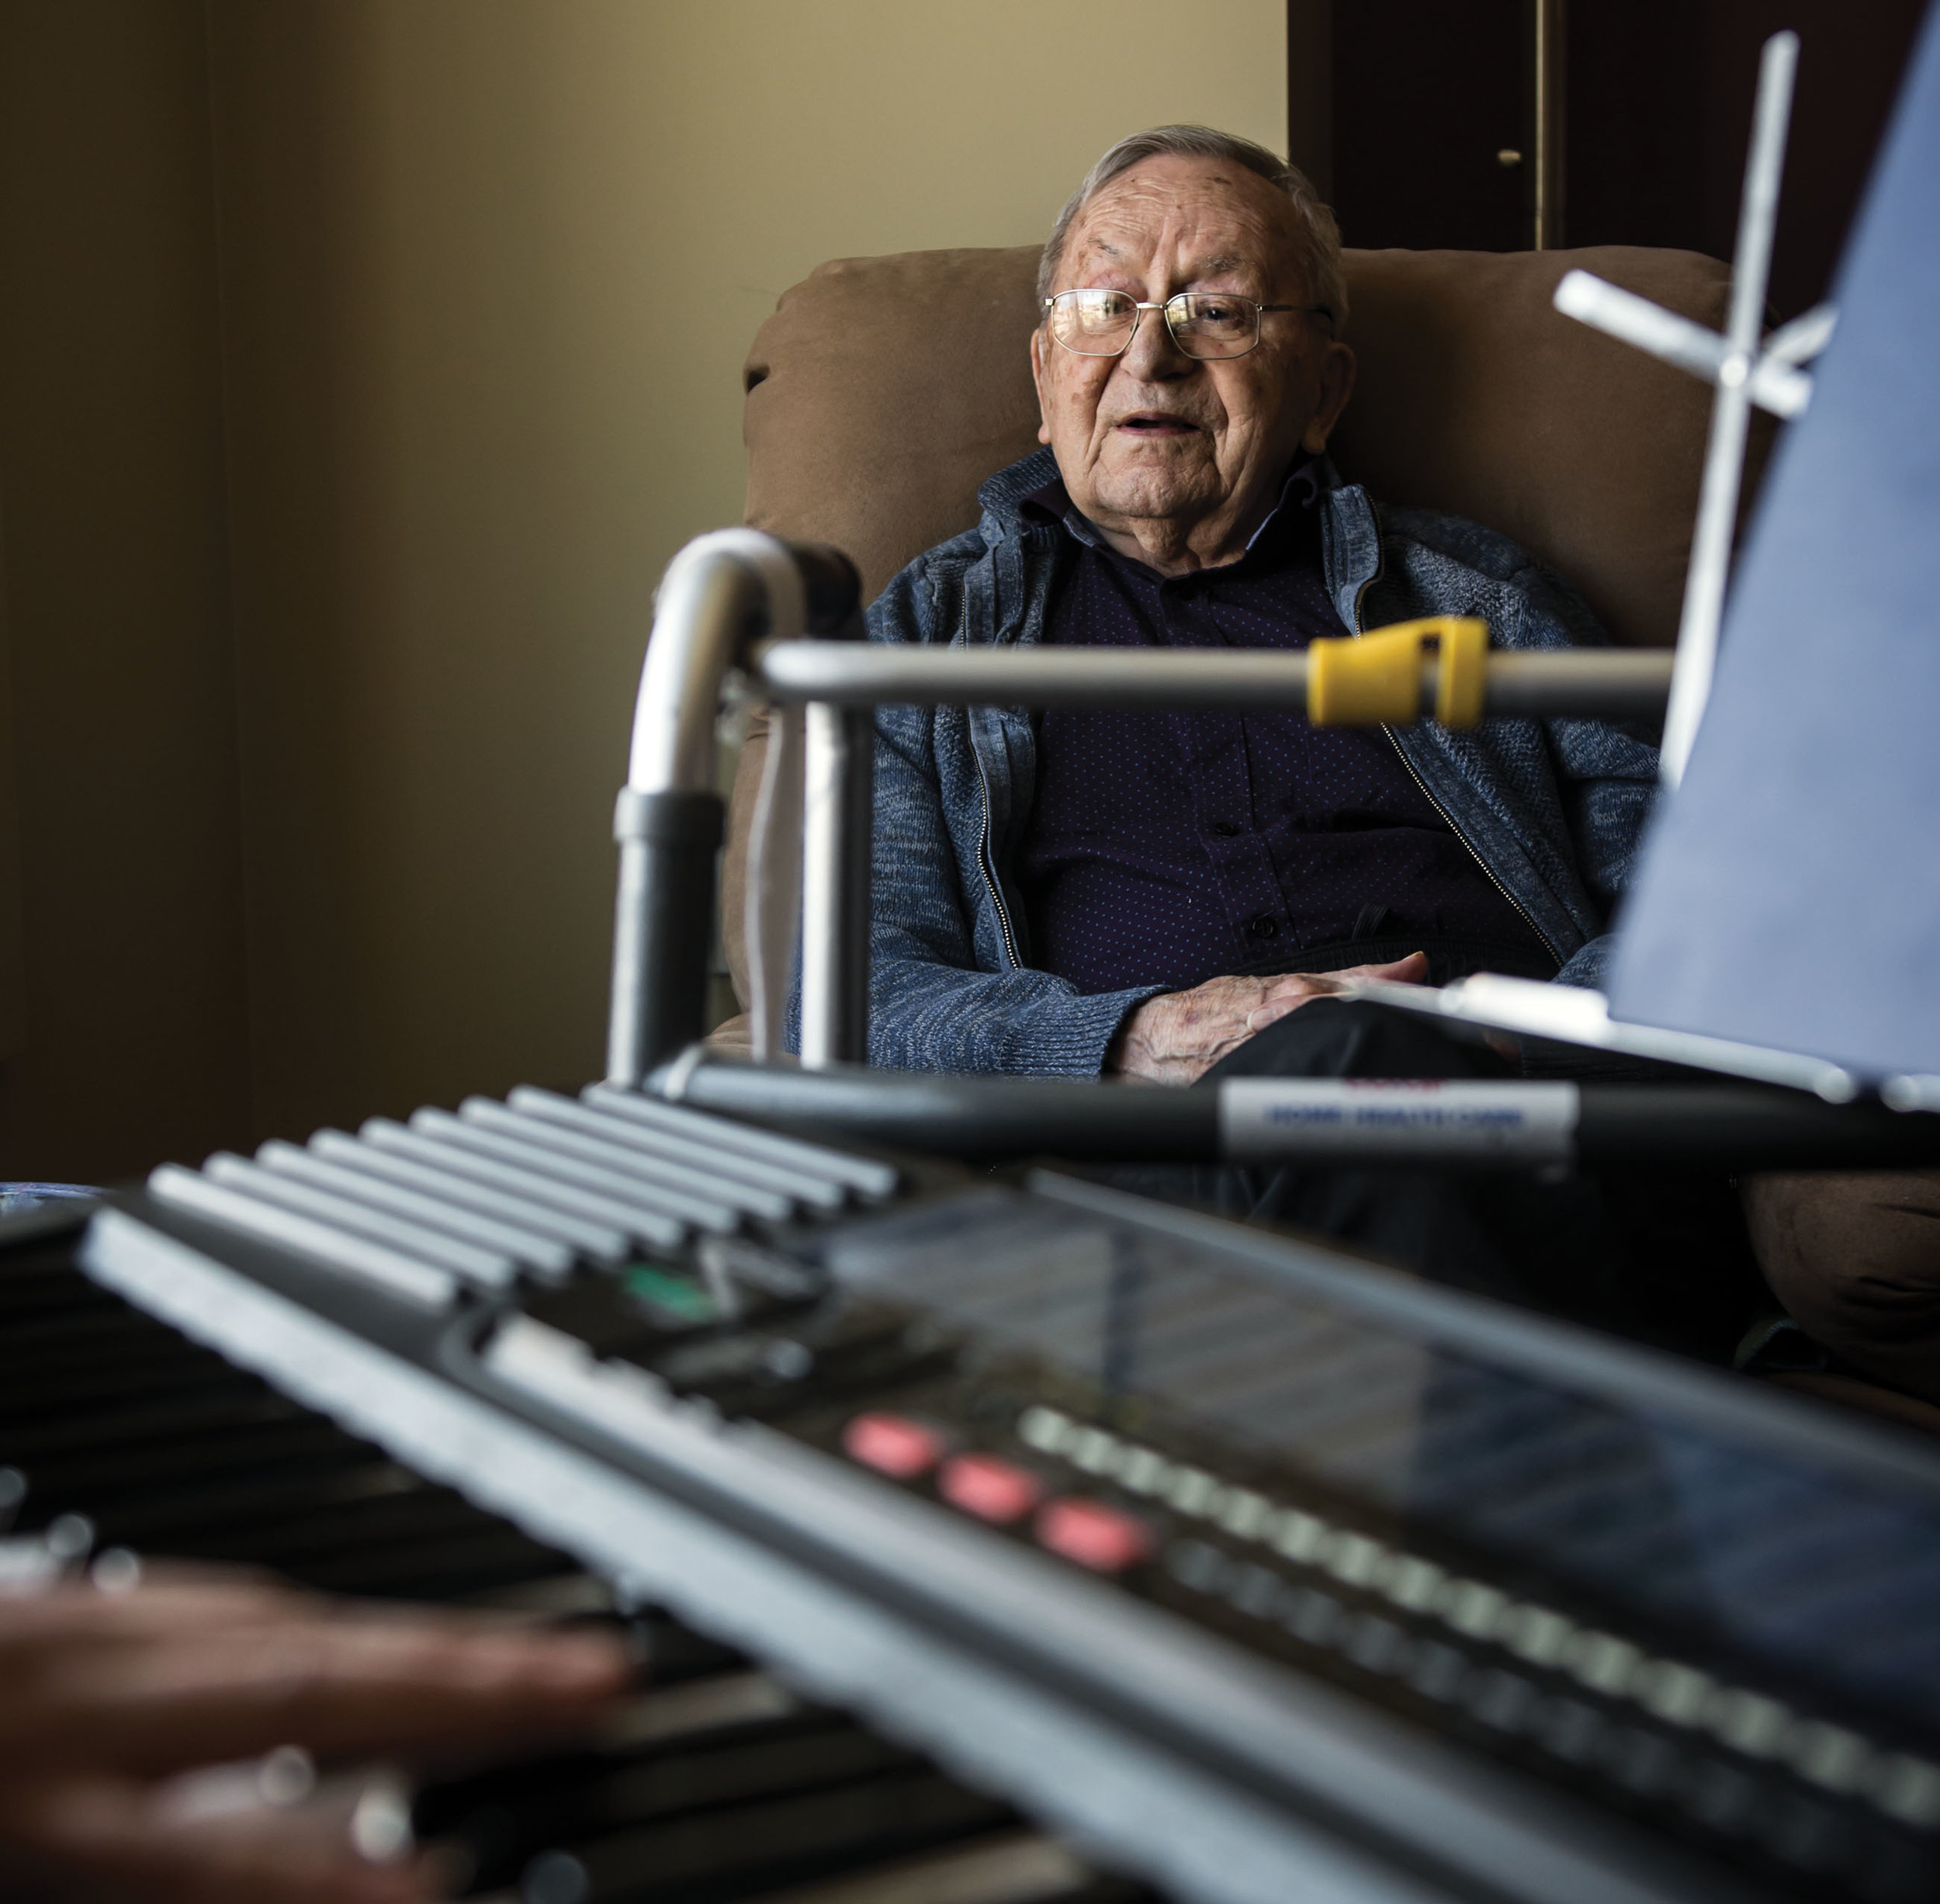 Lifelong musician Walter Mitson, 92, was diagnosed with dementia five years ago. Today, music still engages him. Photography By Jennifer Friesen.